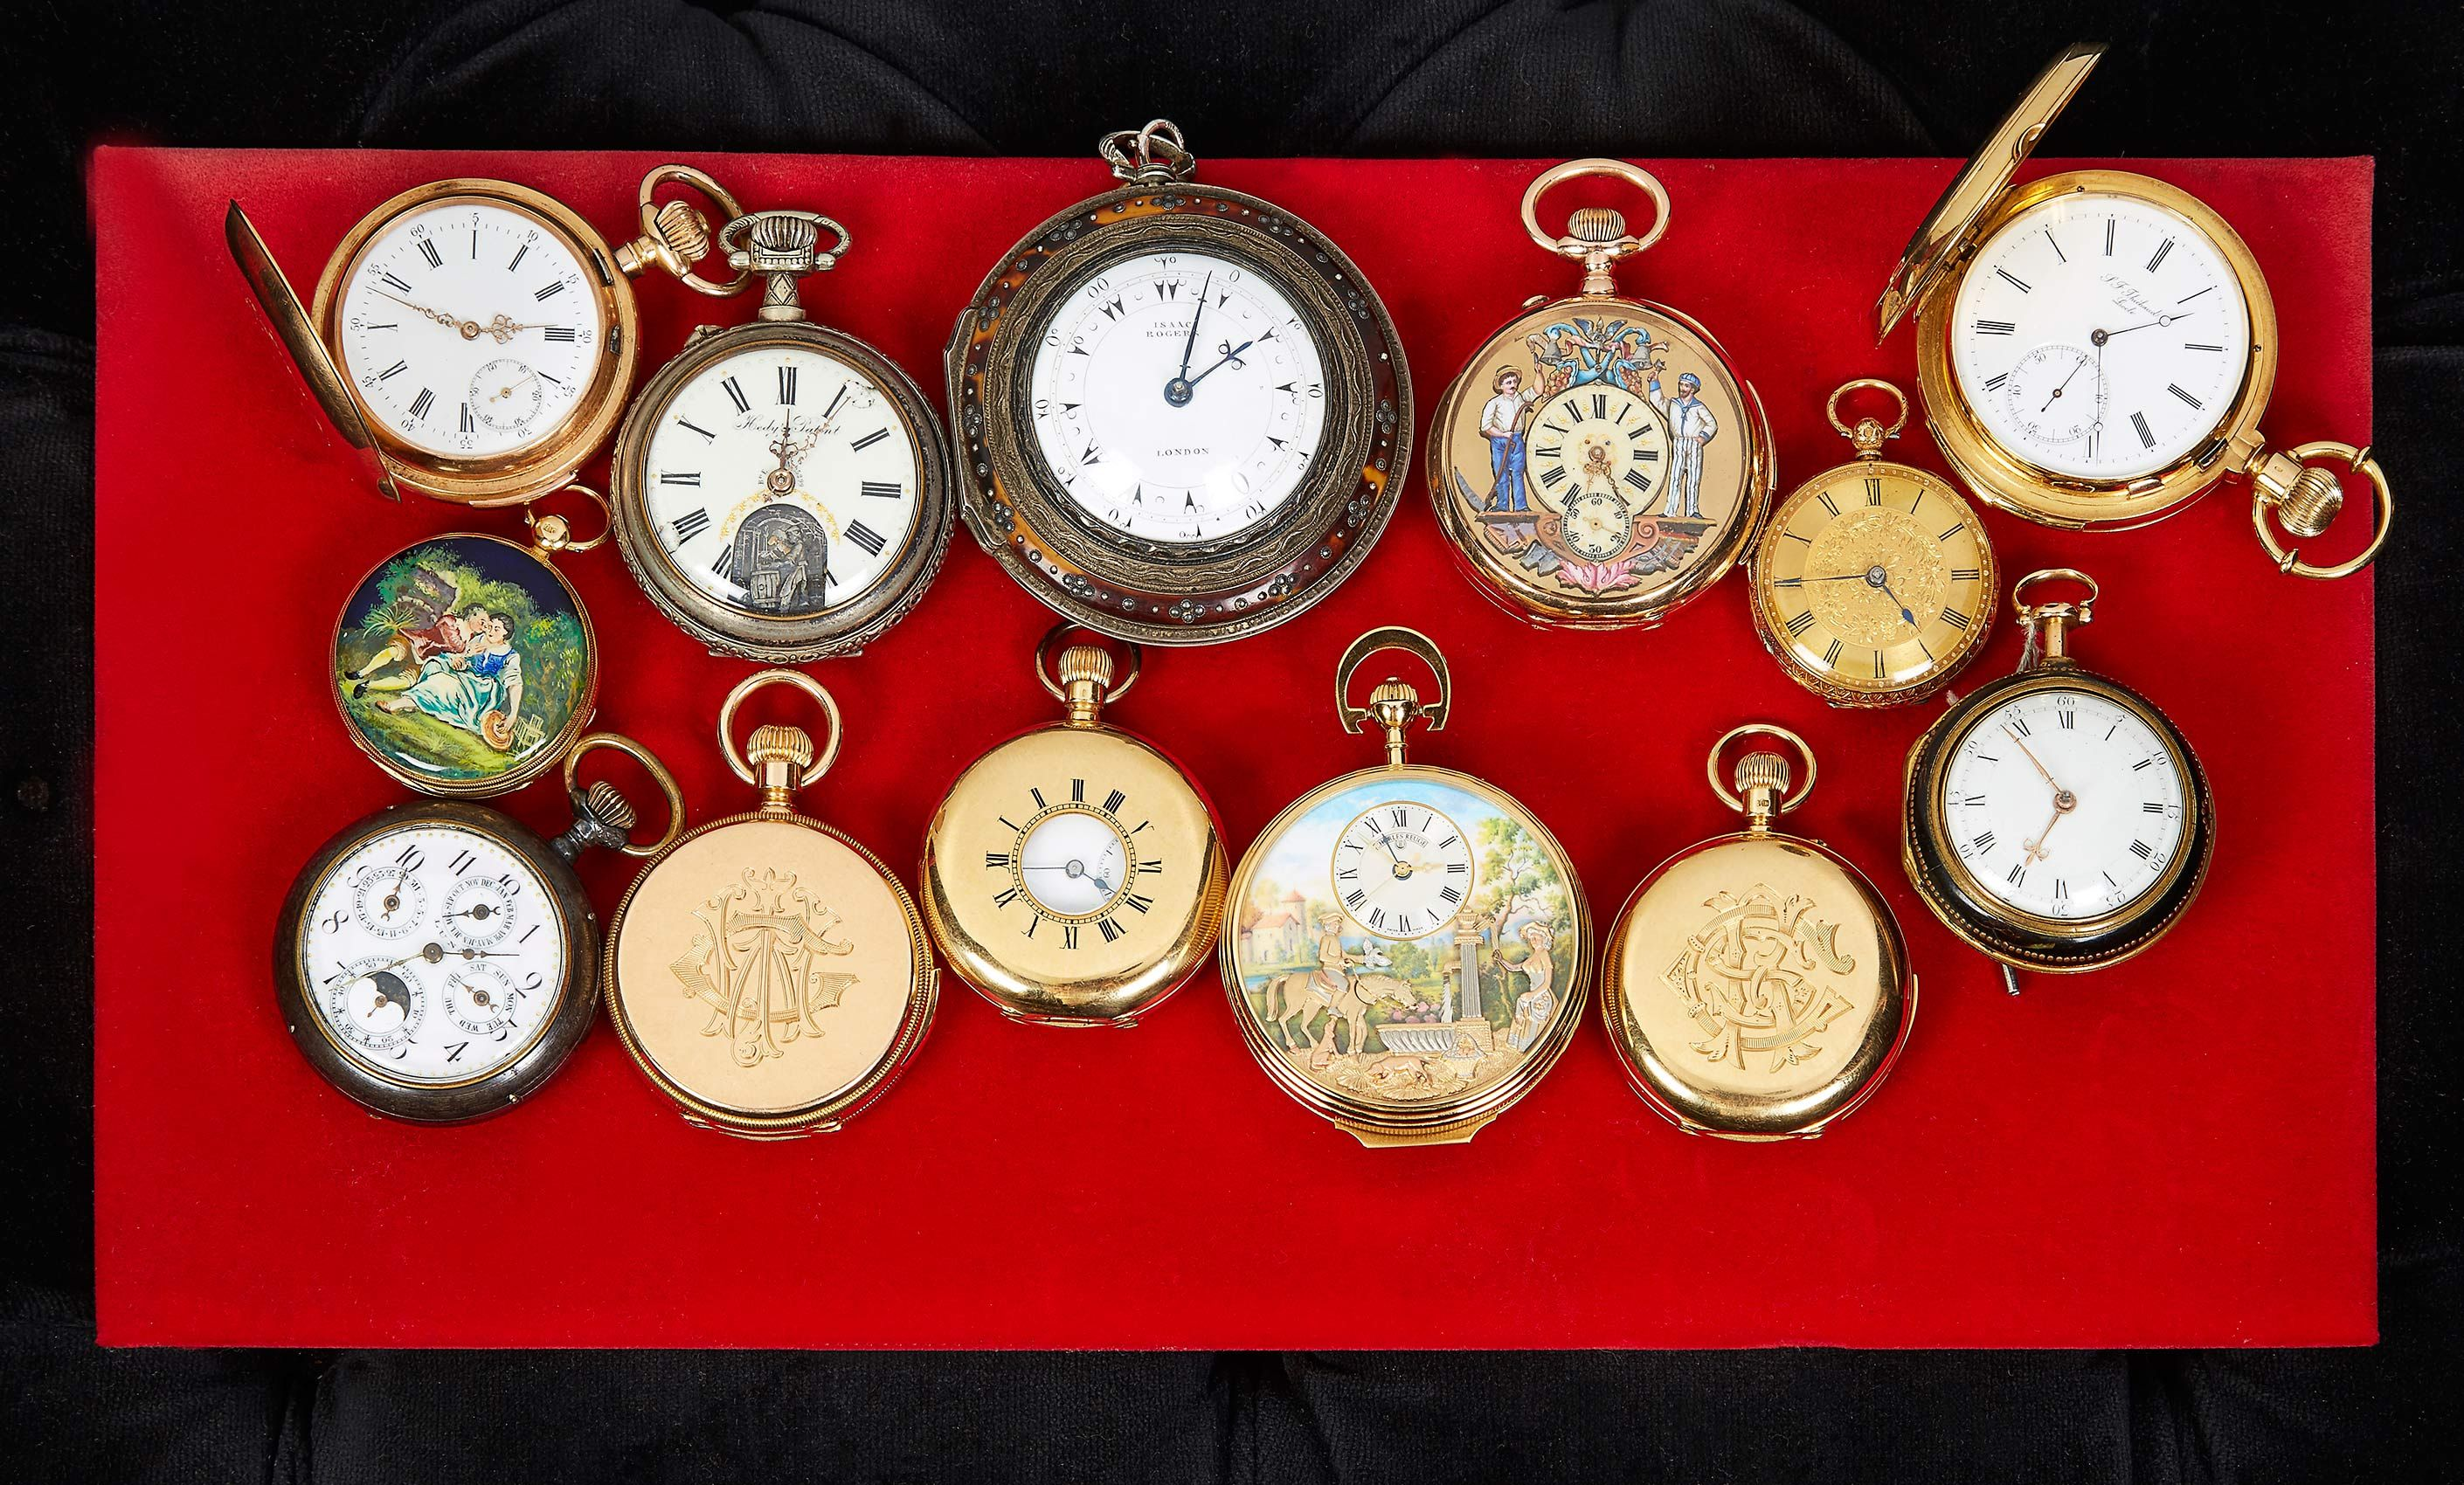 Rare, vintage pocket watches